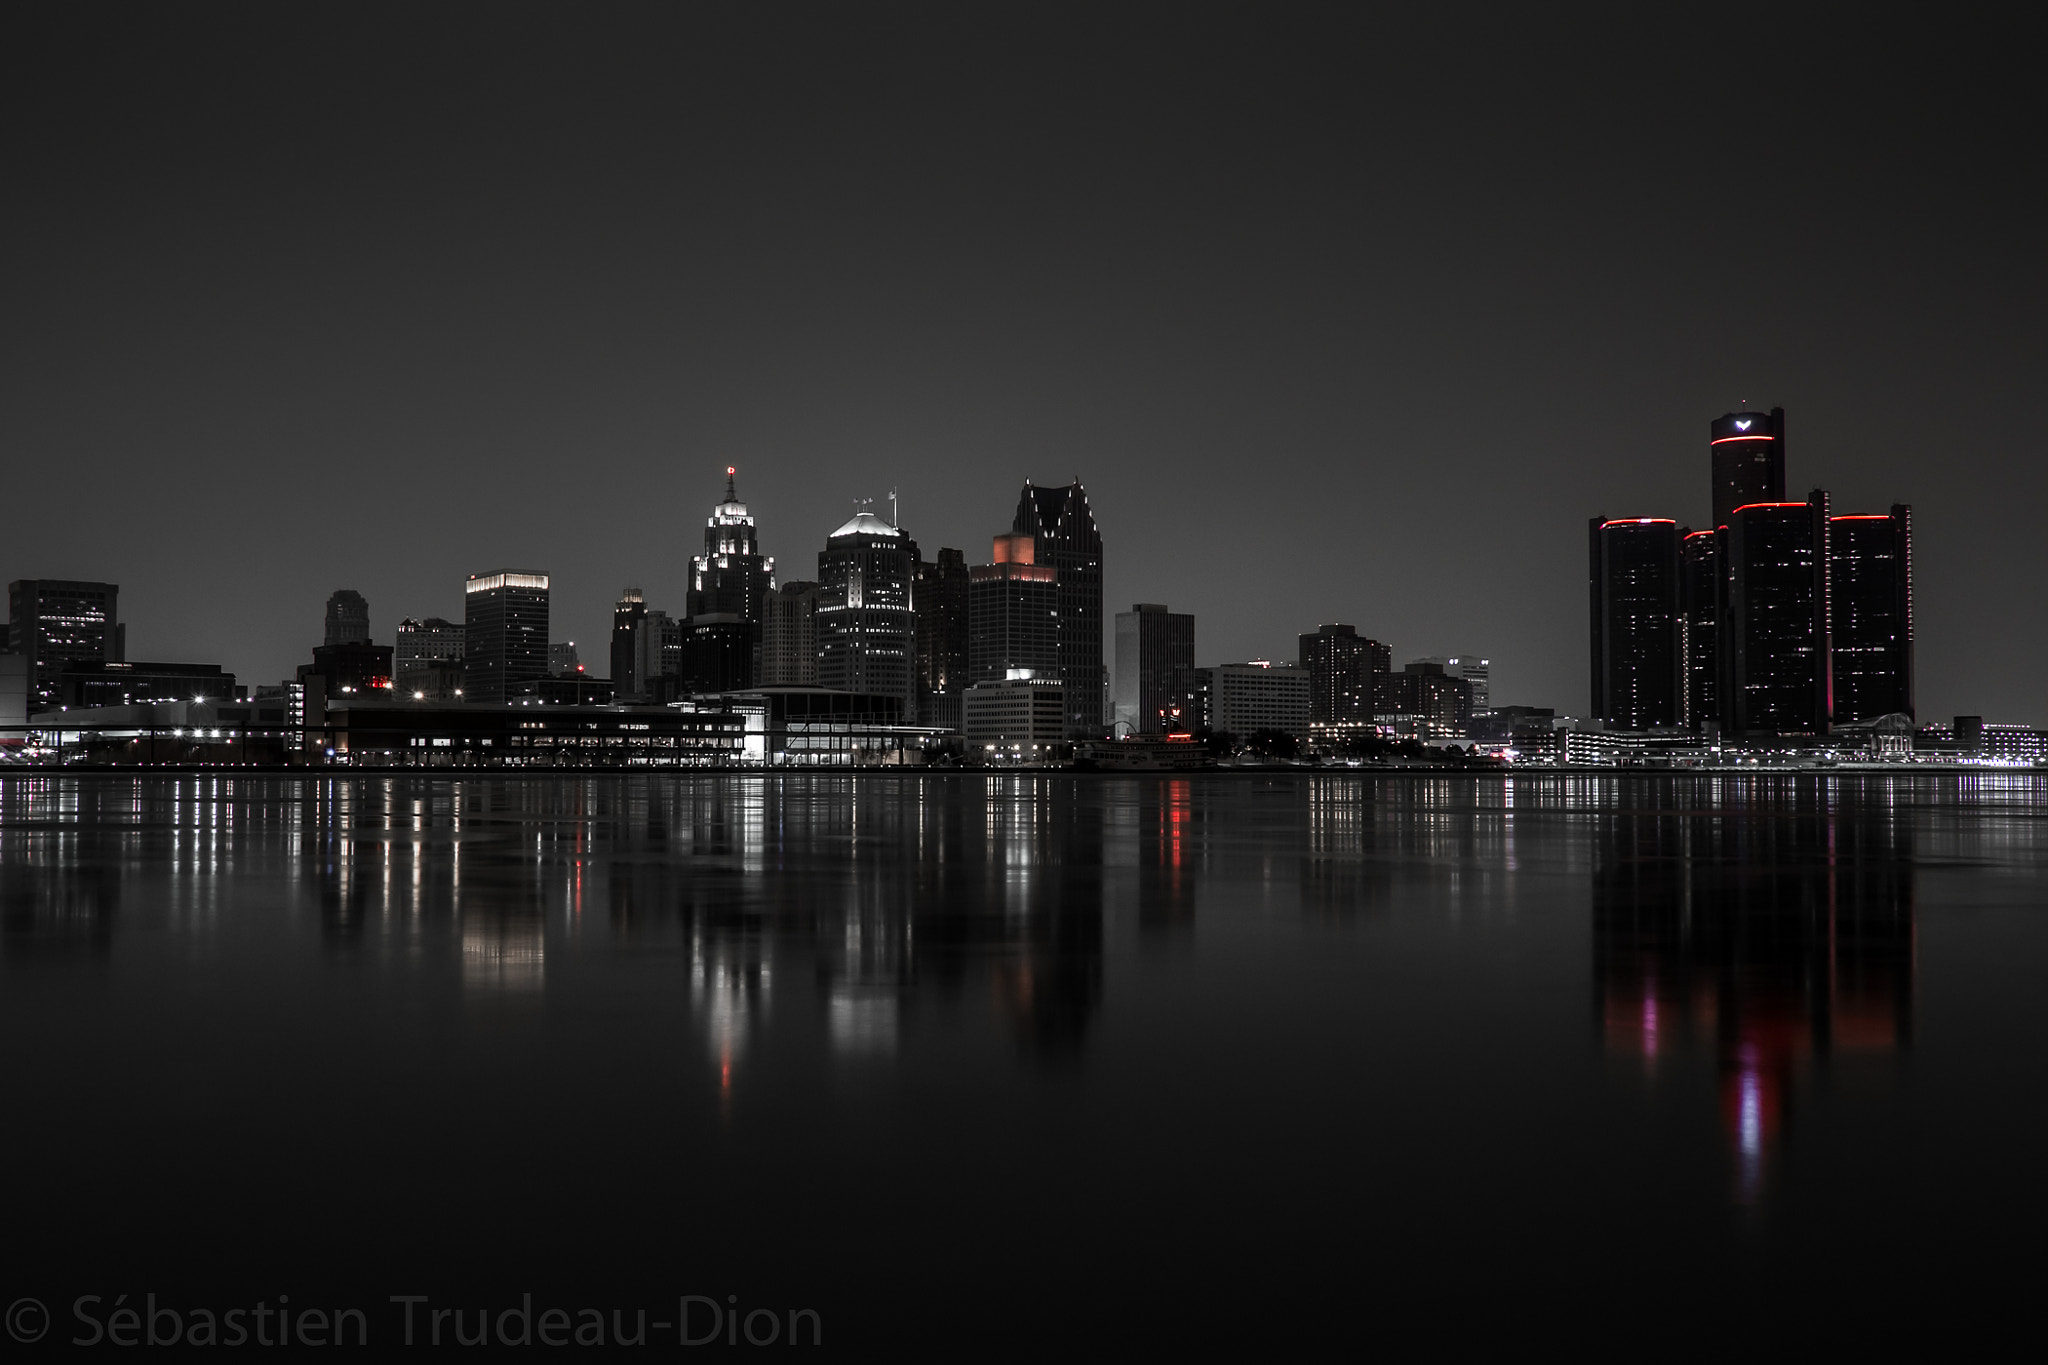 Photograph Detroit Skyline by Sébastien Trudeau-Dion on 500px